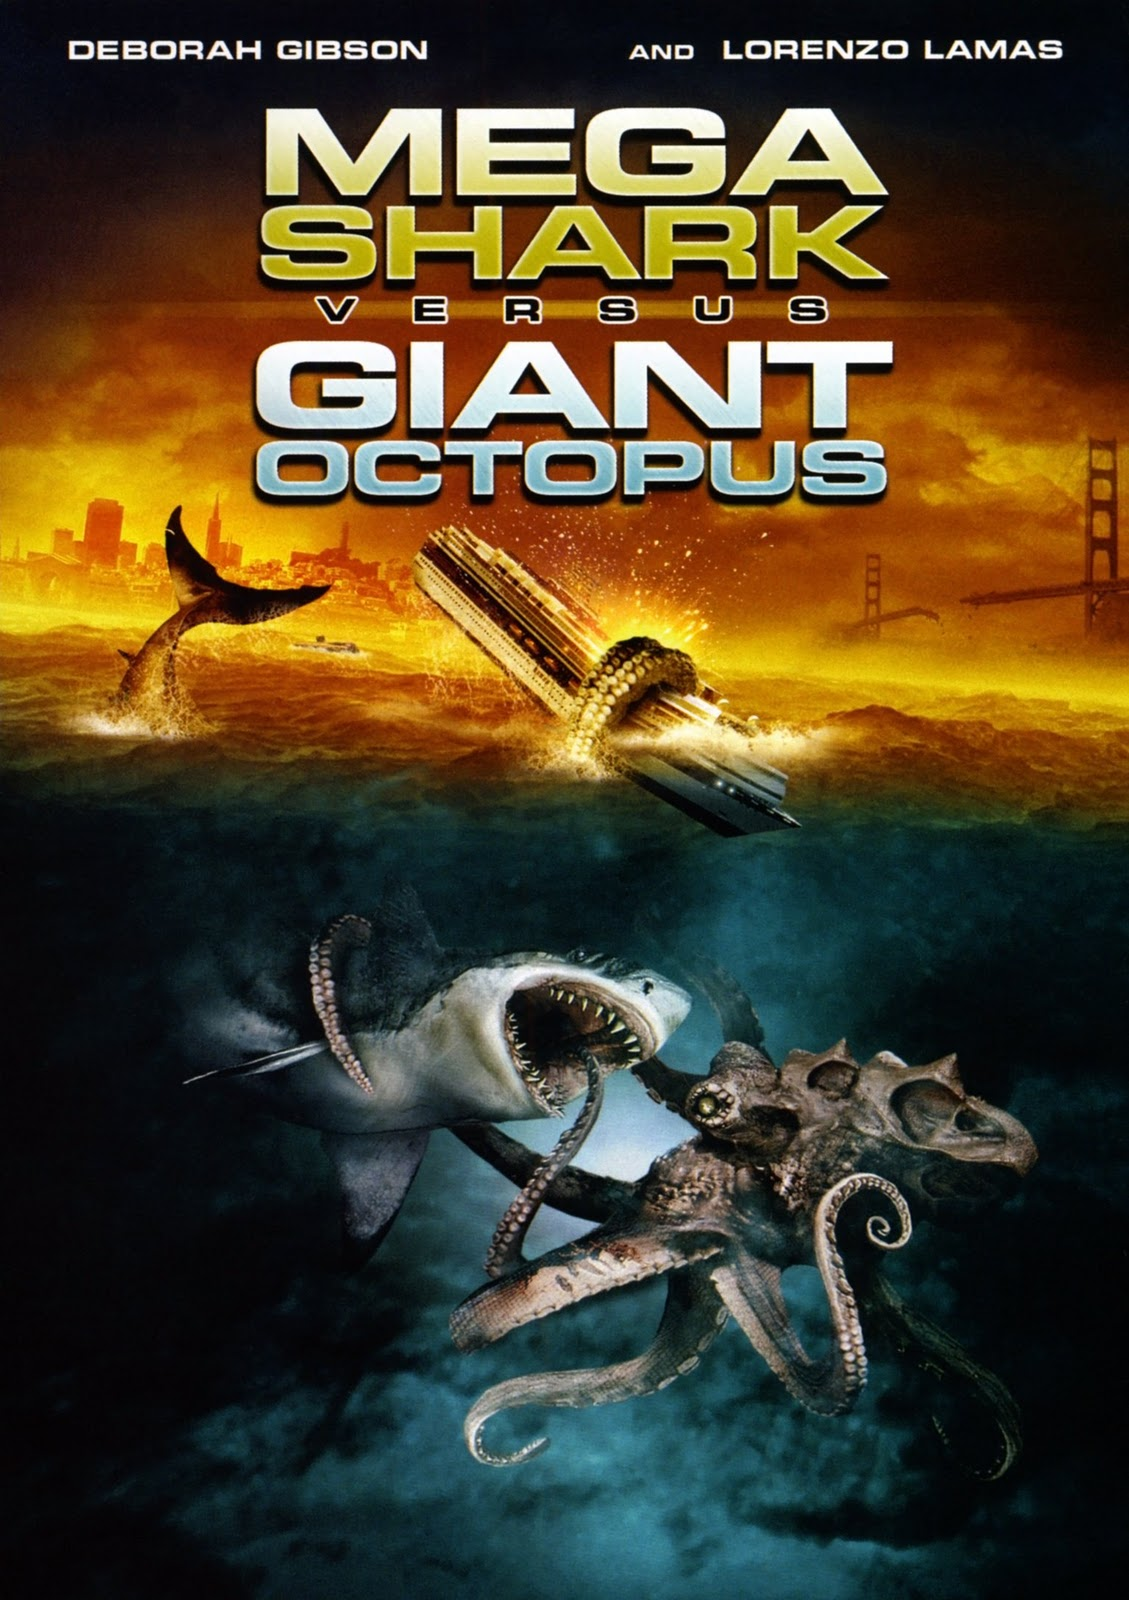 [Crítica] Monstros Marinhos (Mega Shark vs Giant Octopus)